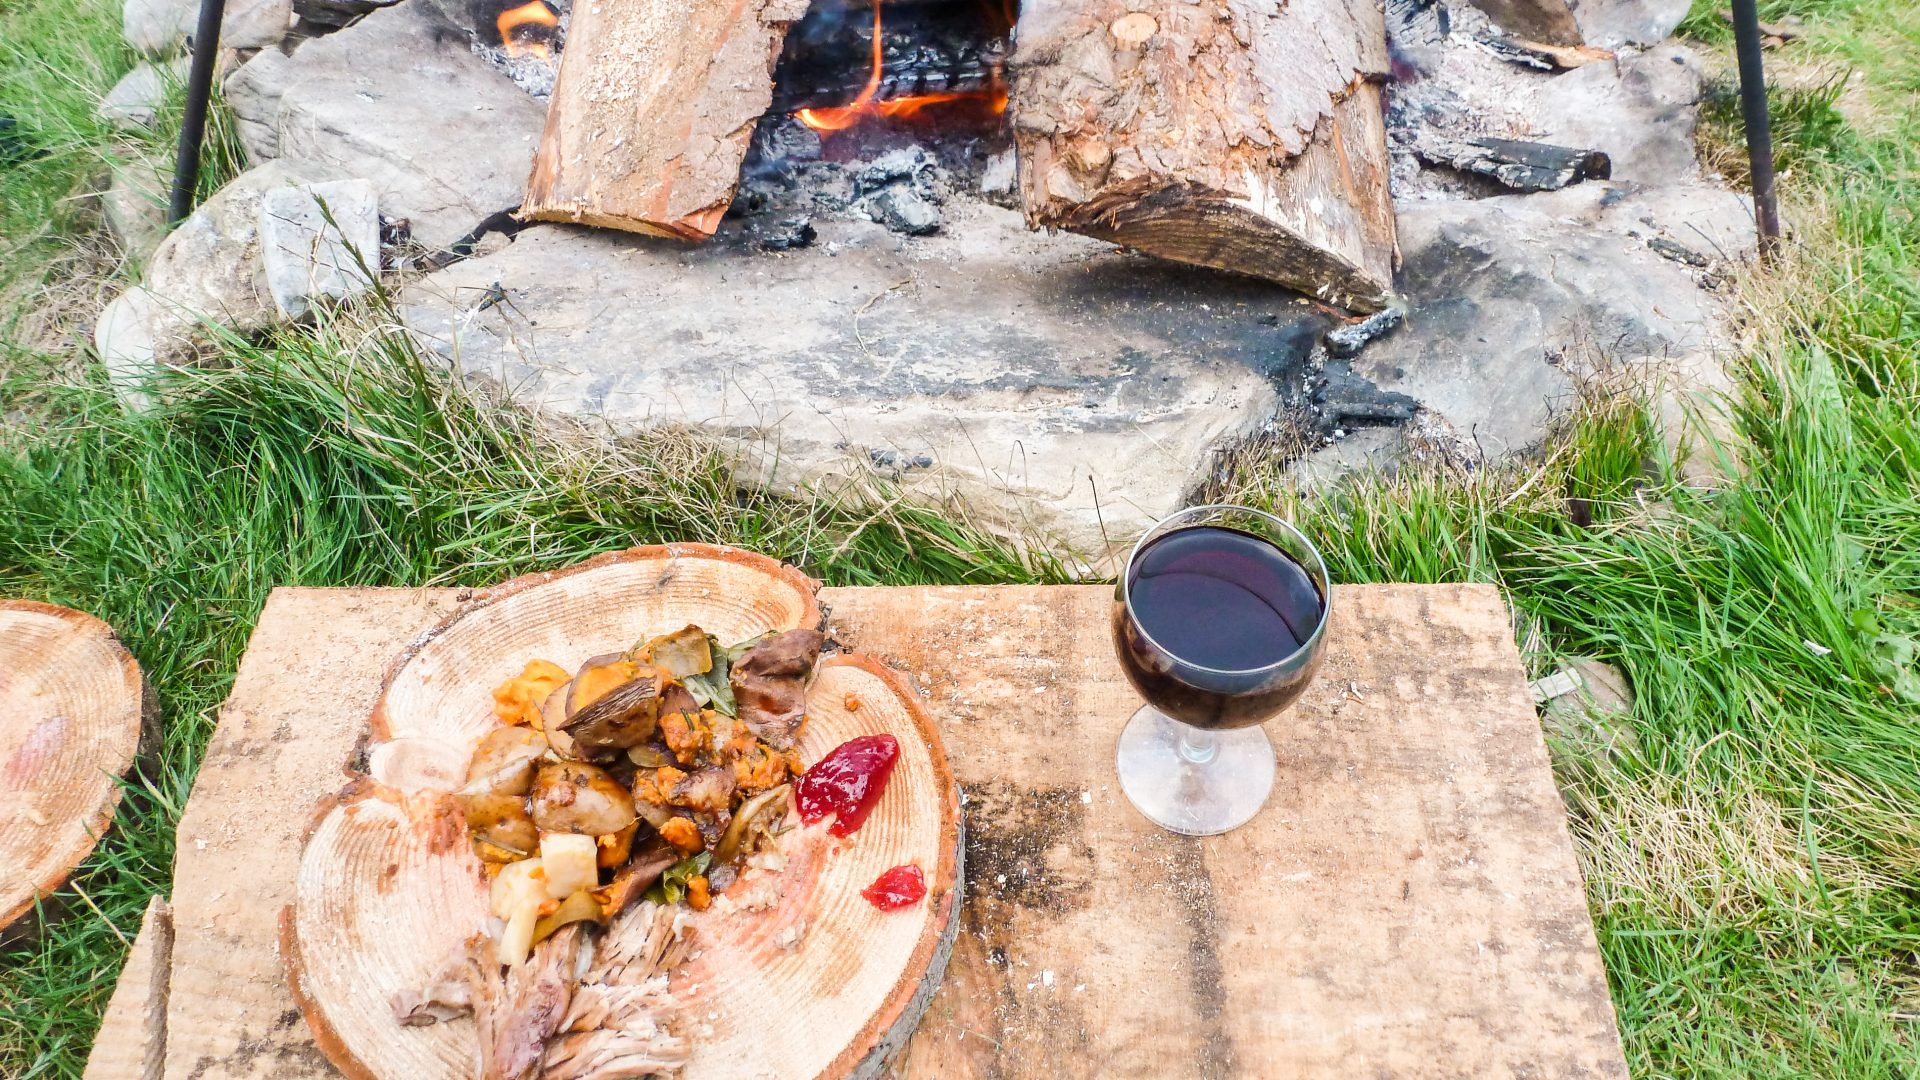 Experiencing nature: Enjoying pit-roasted meal by campfire, Prehistoric Cookery